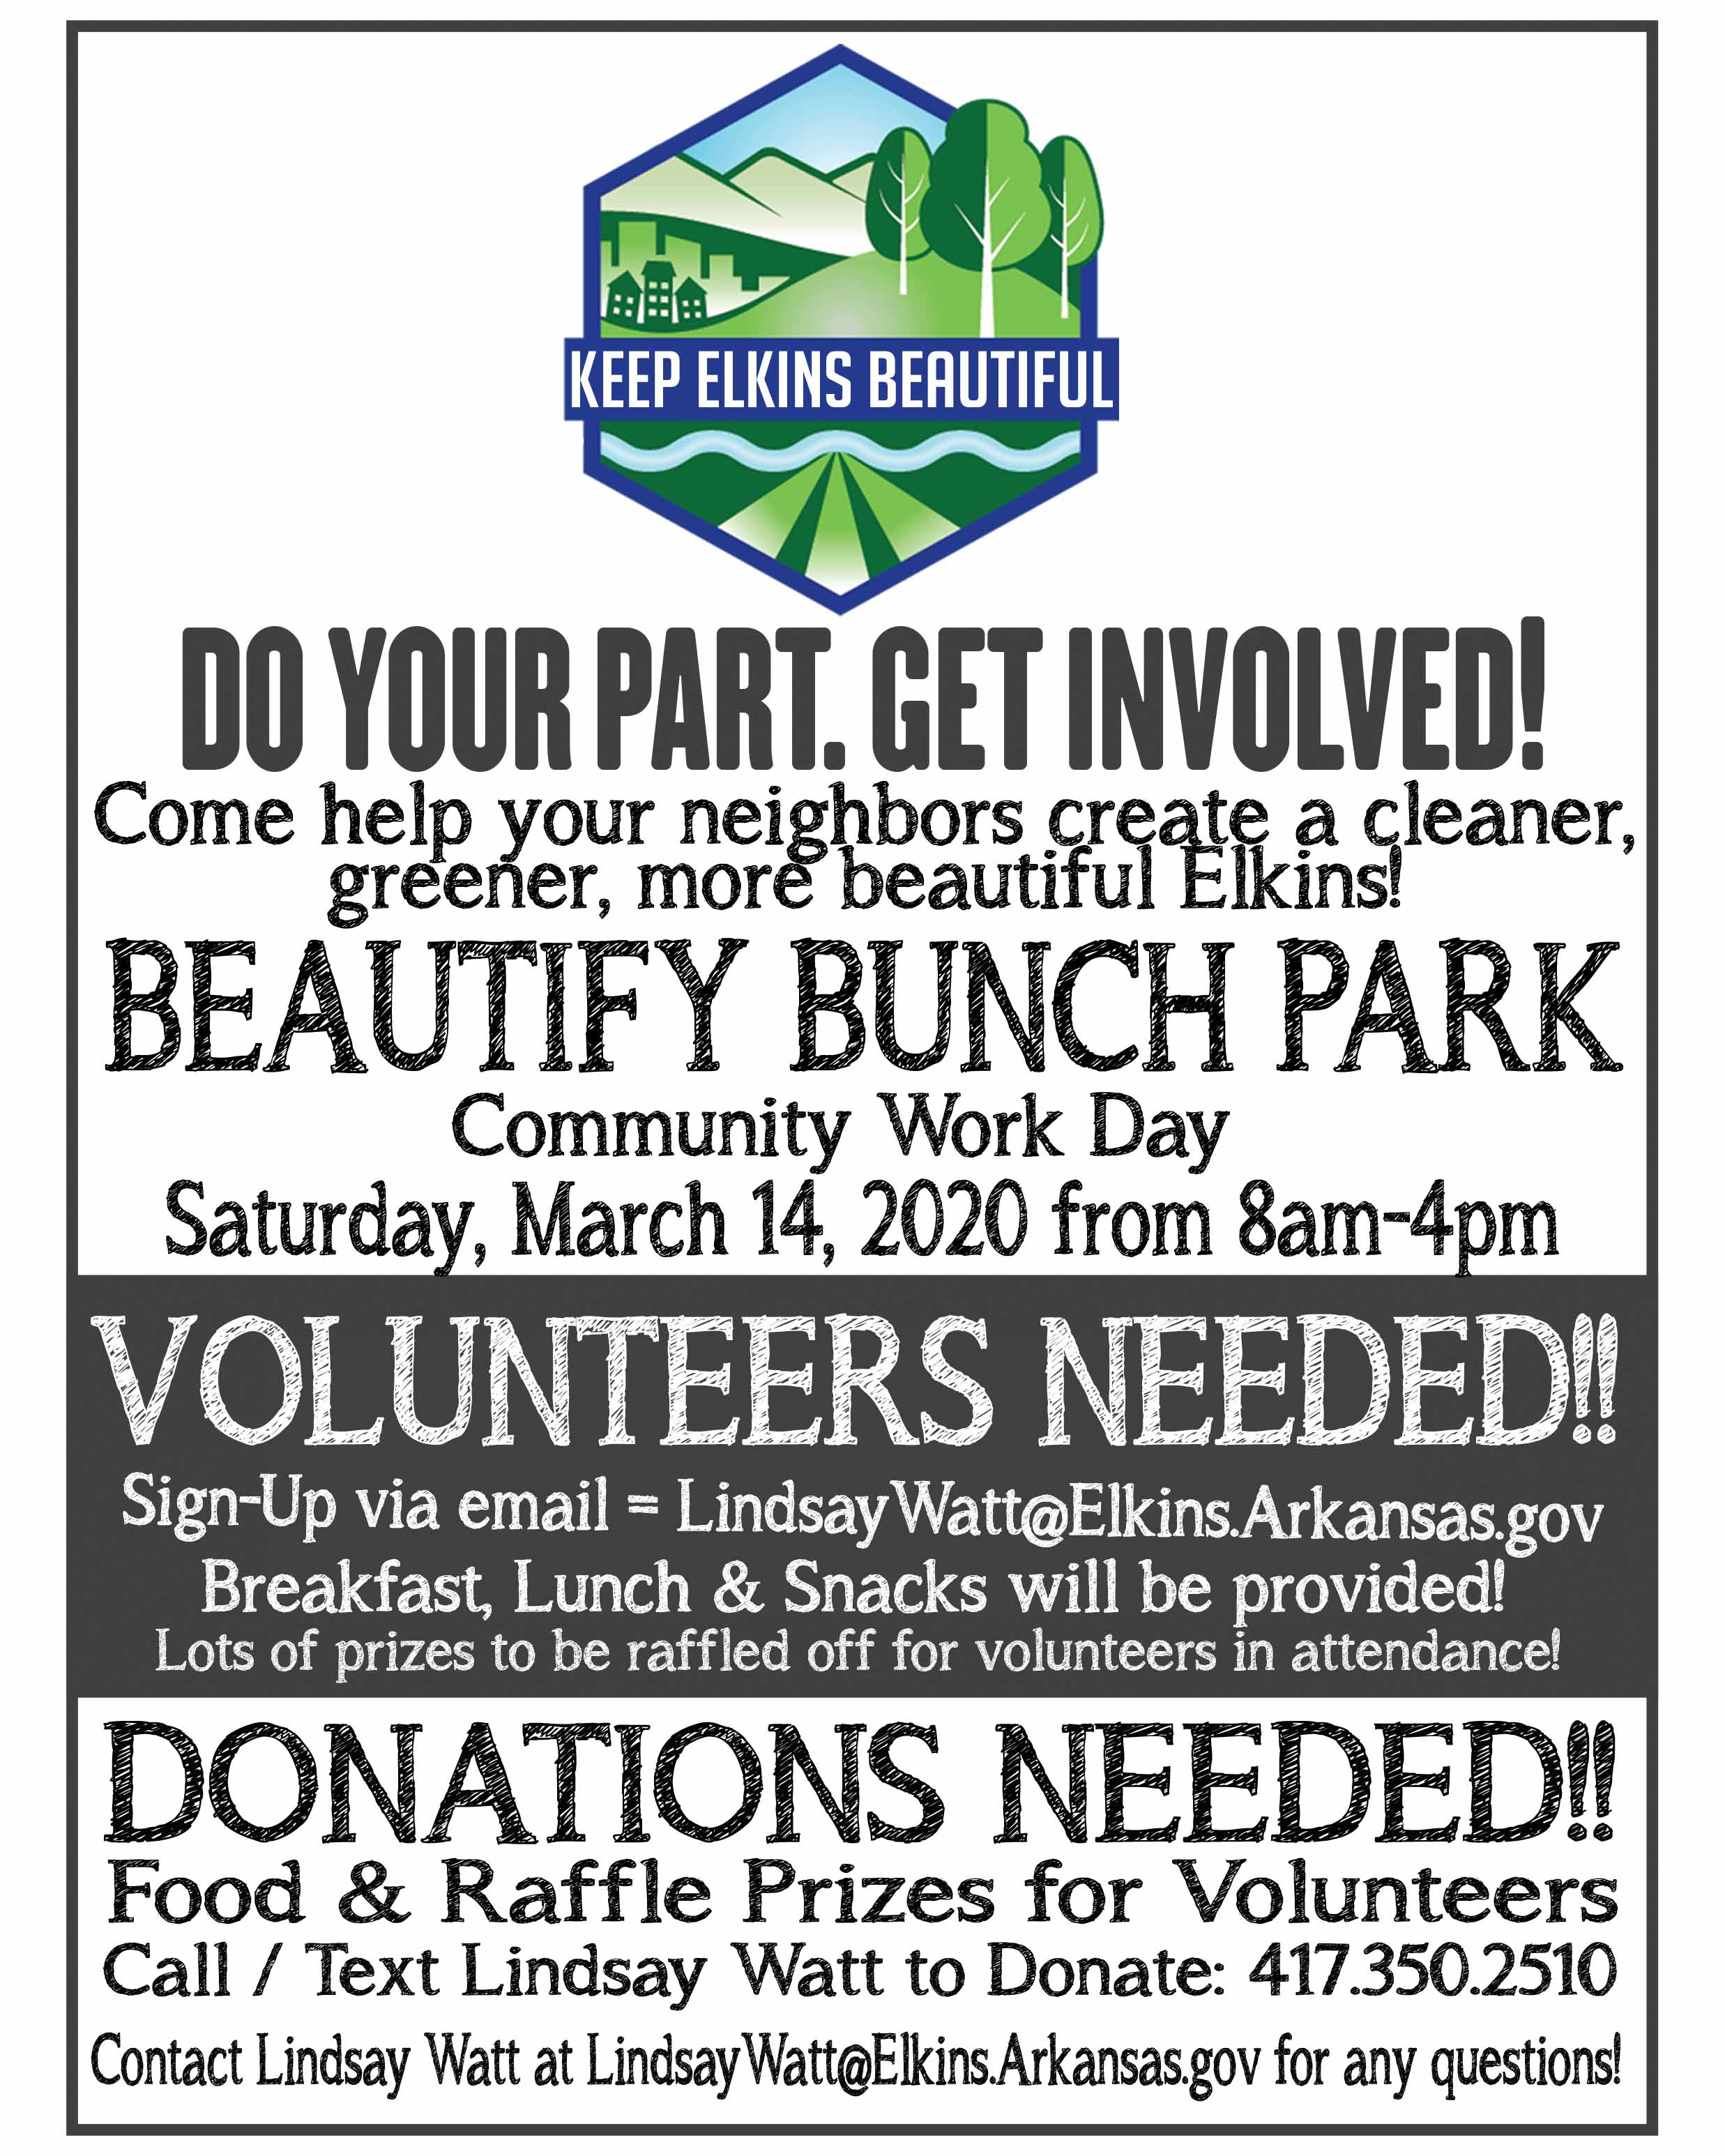 Postponed to April 4! -Beautify Bunch Park Community Workday – March 14